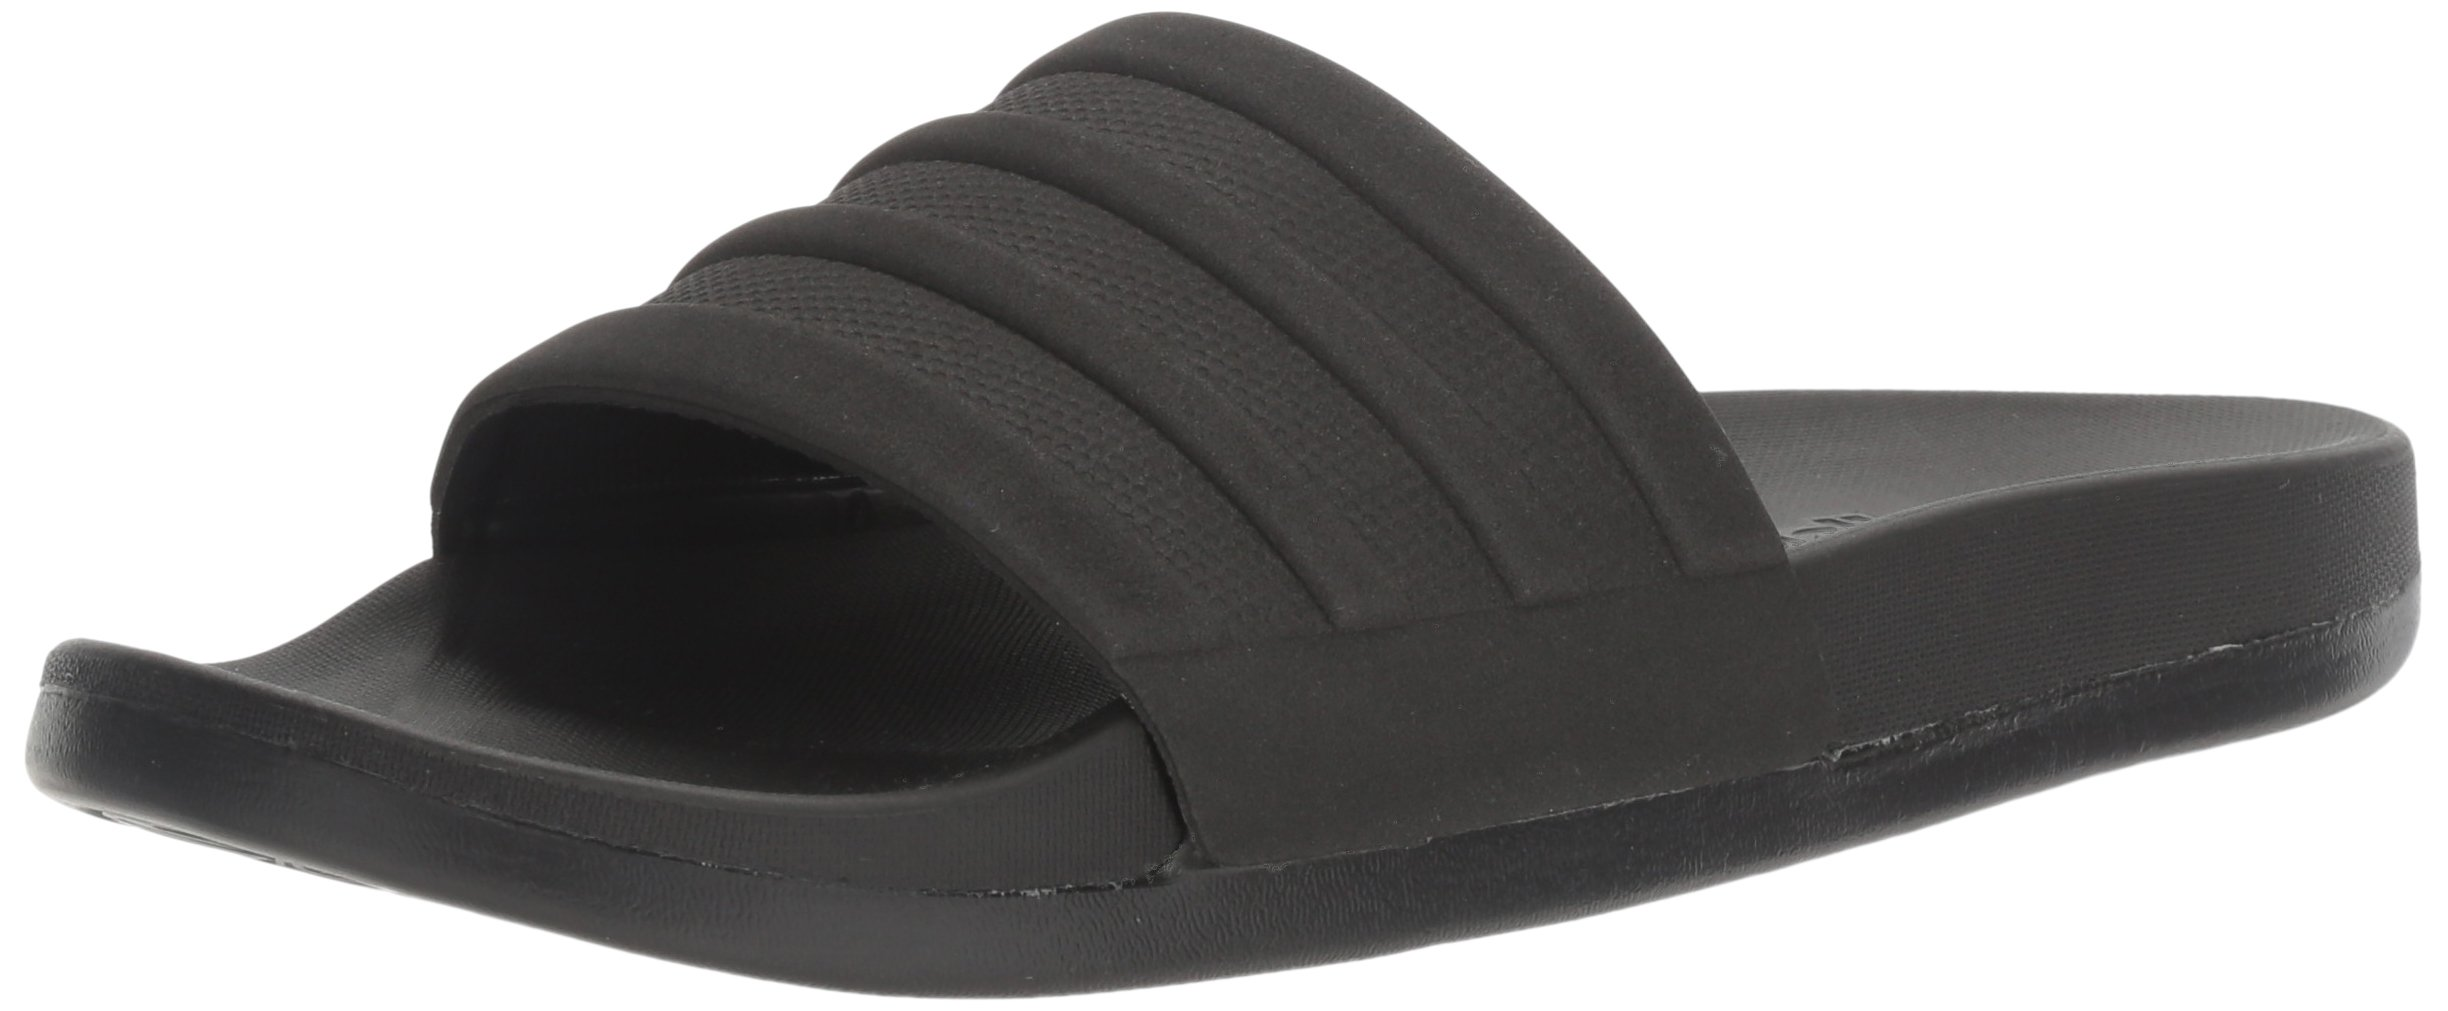 adidas Men's Adilette Comfort Slide Sandals, Black/Black/Black, (10 M US)